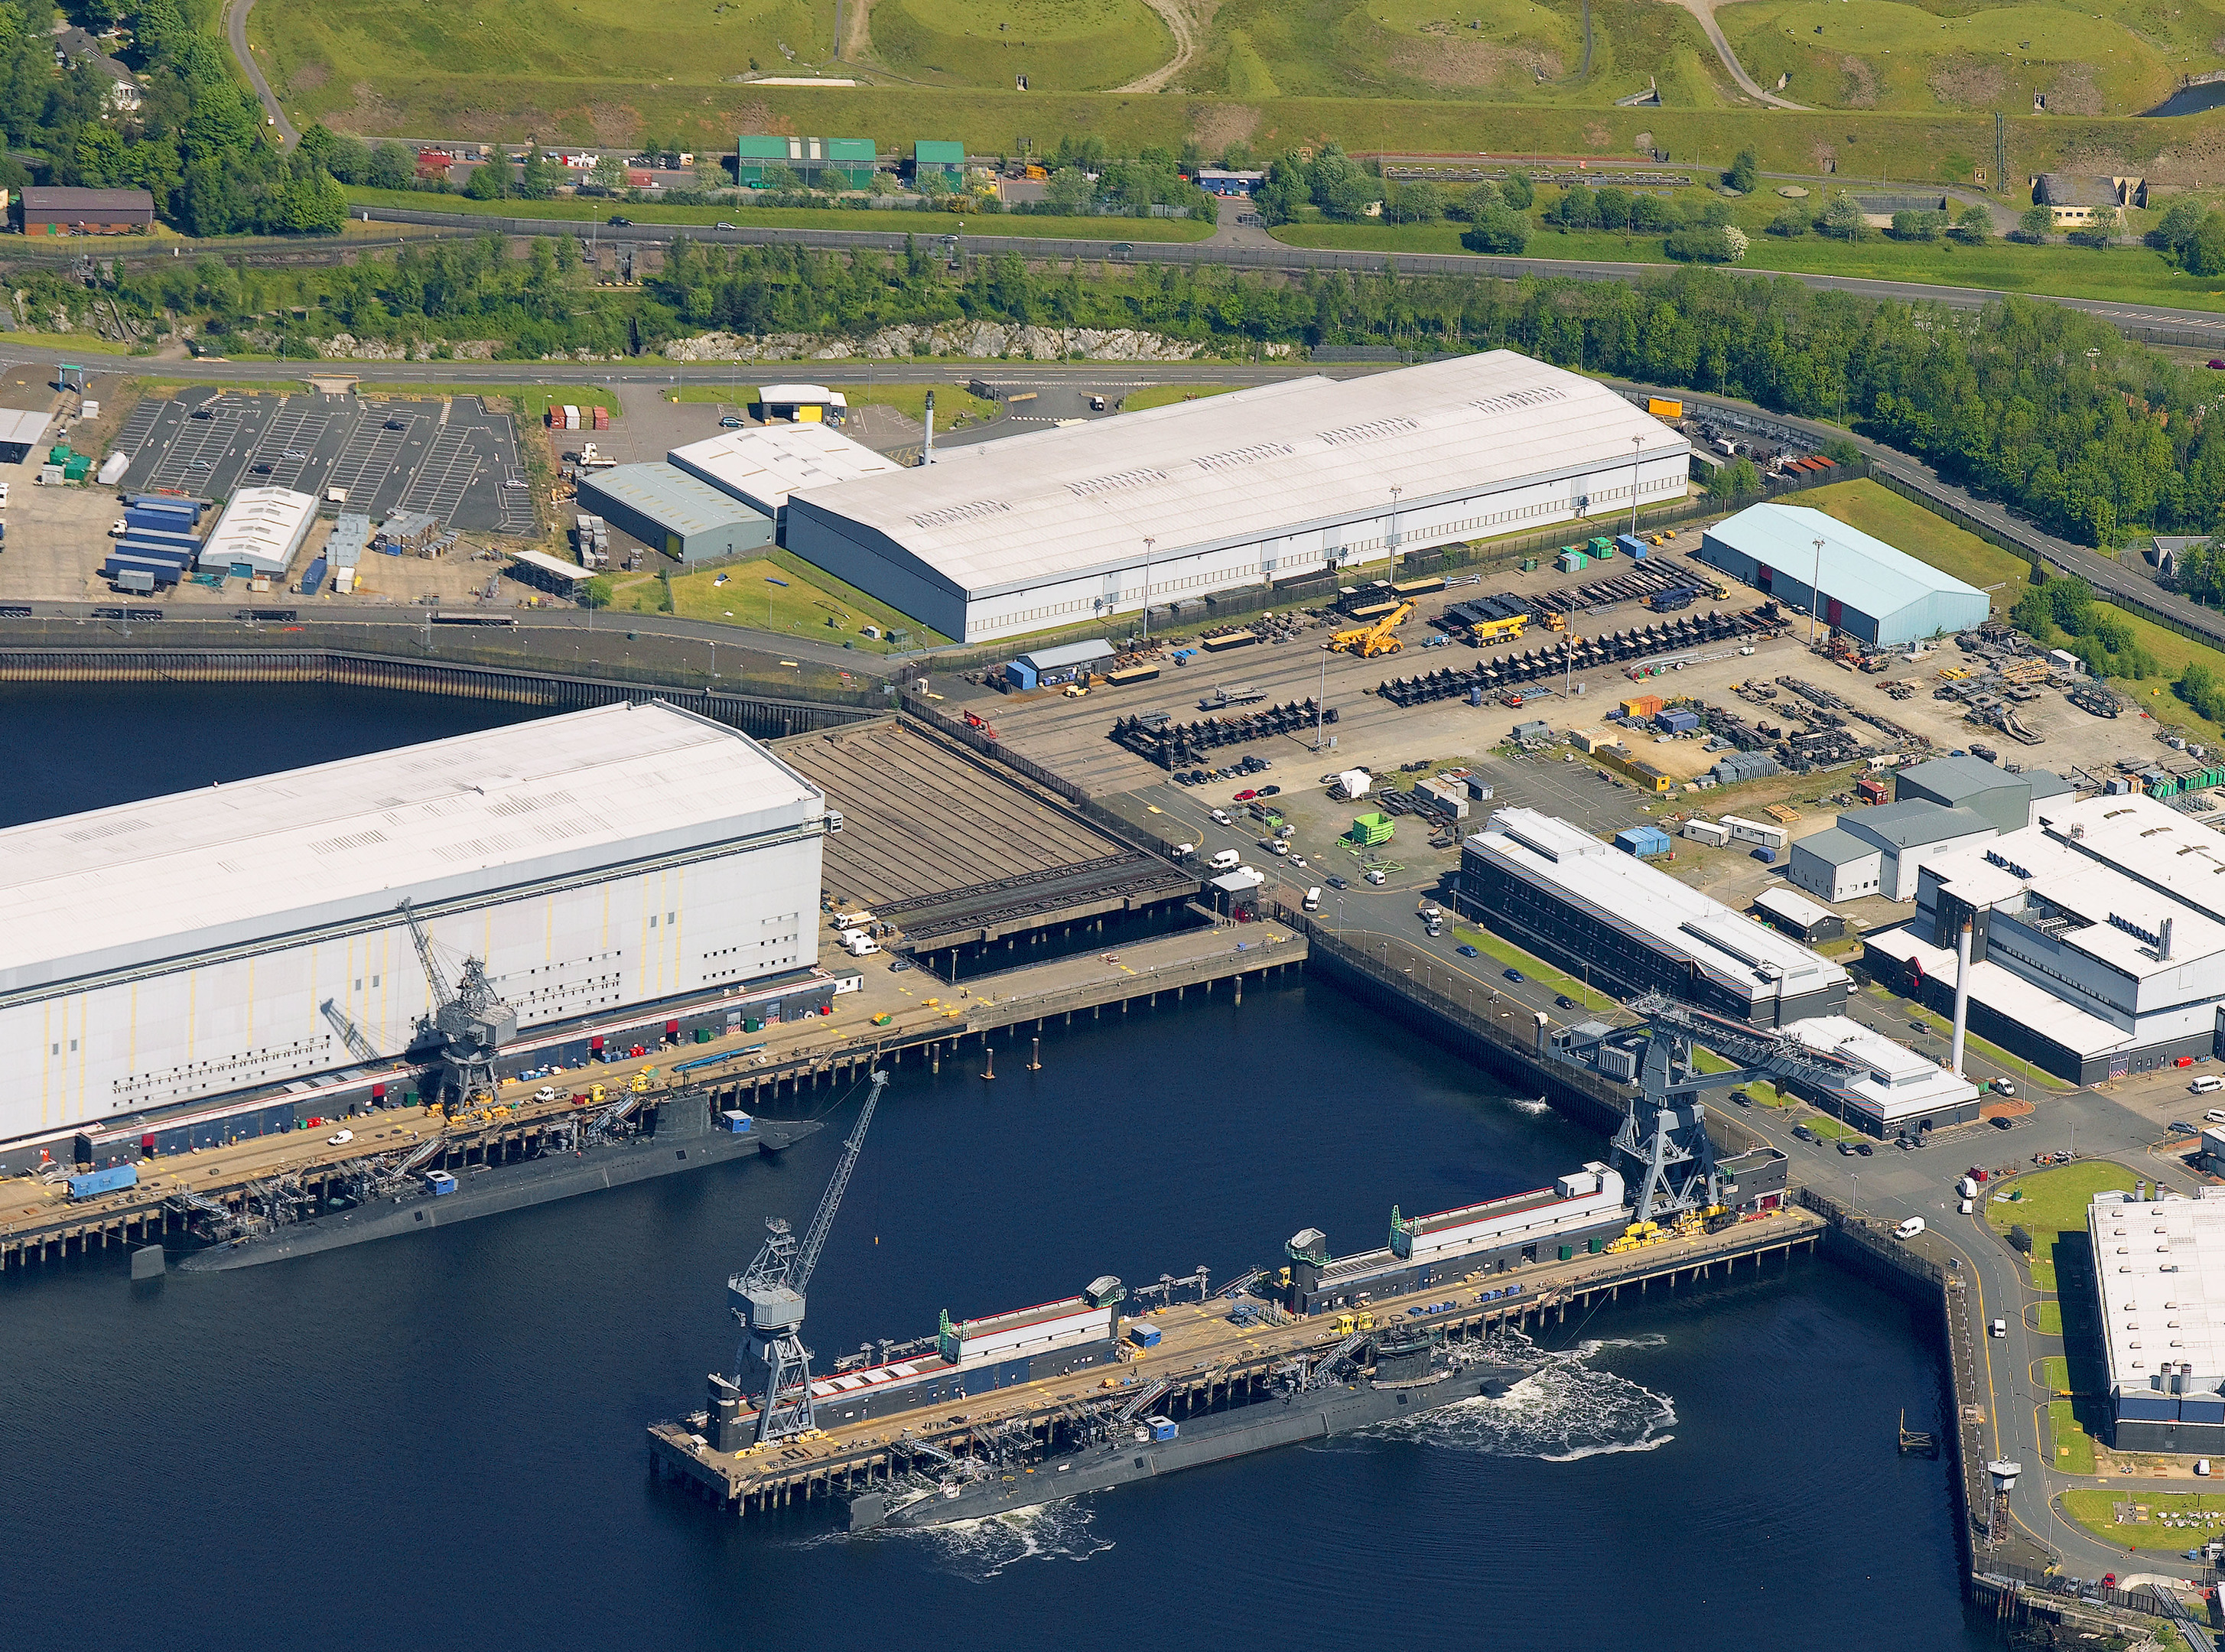 Faslane is the sole base for HMS Vanguard, HMS Victorious, HMS Vigilant and HMS Vengeance, the four Vanguard-class submarines which carry the UK's Trident nuclear deterrent.